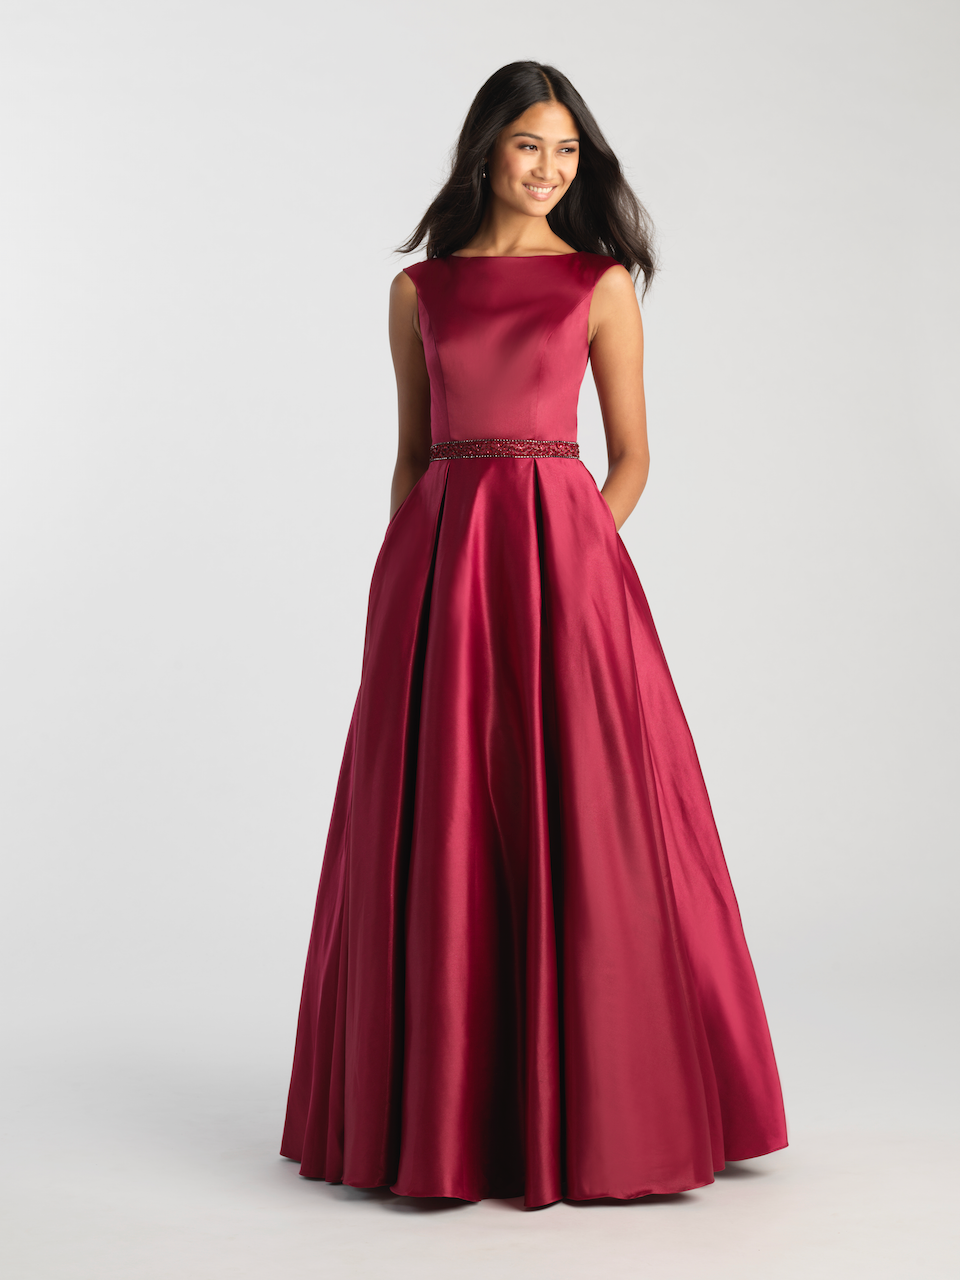 MJ 20-506M burgundy Modest Prom Dress Ball Gown for plus size LDS formal